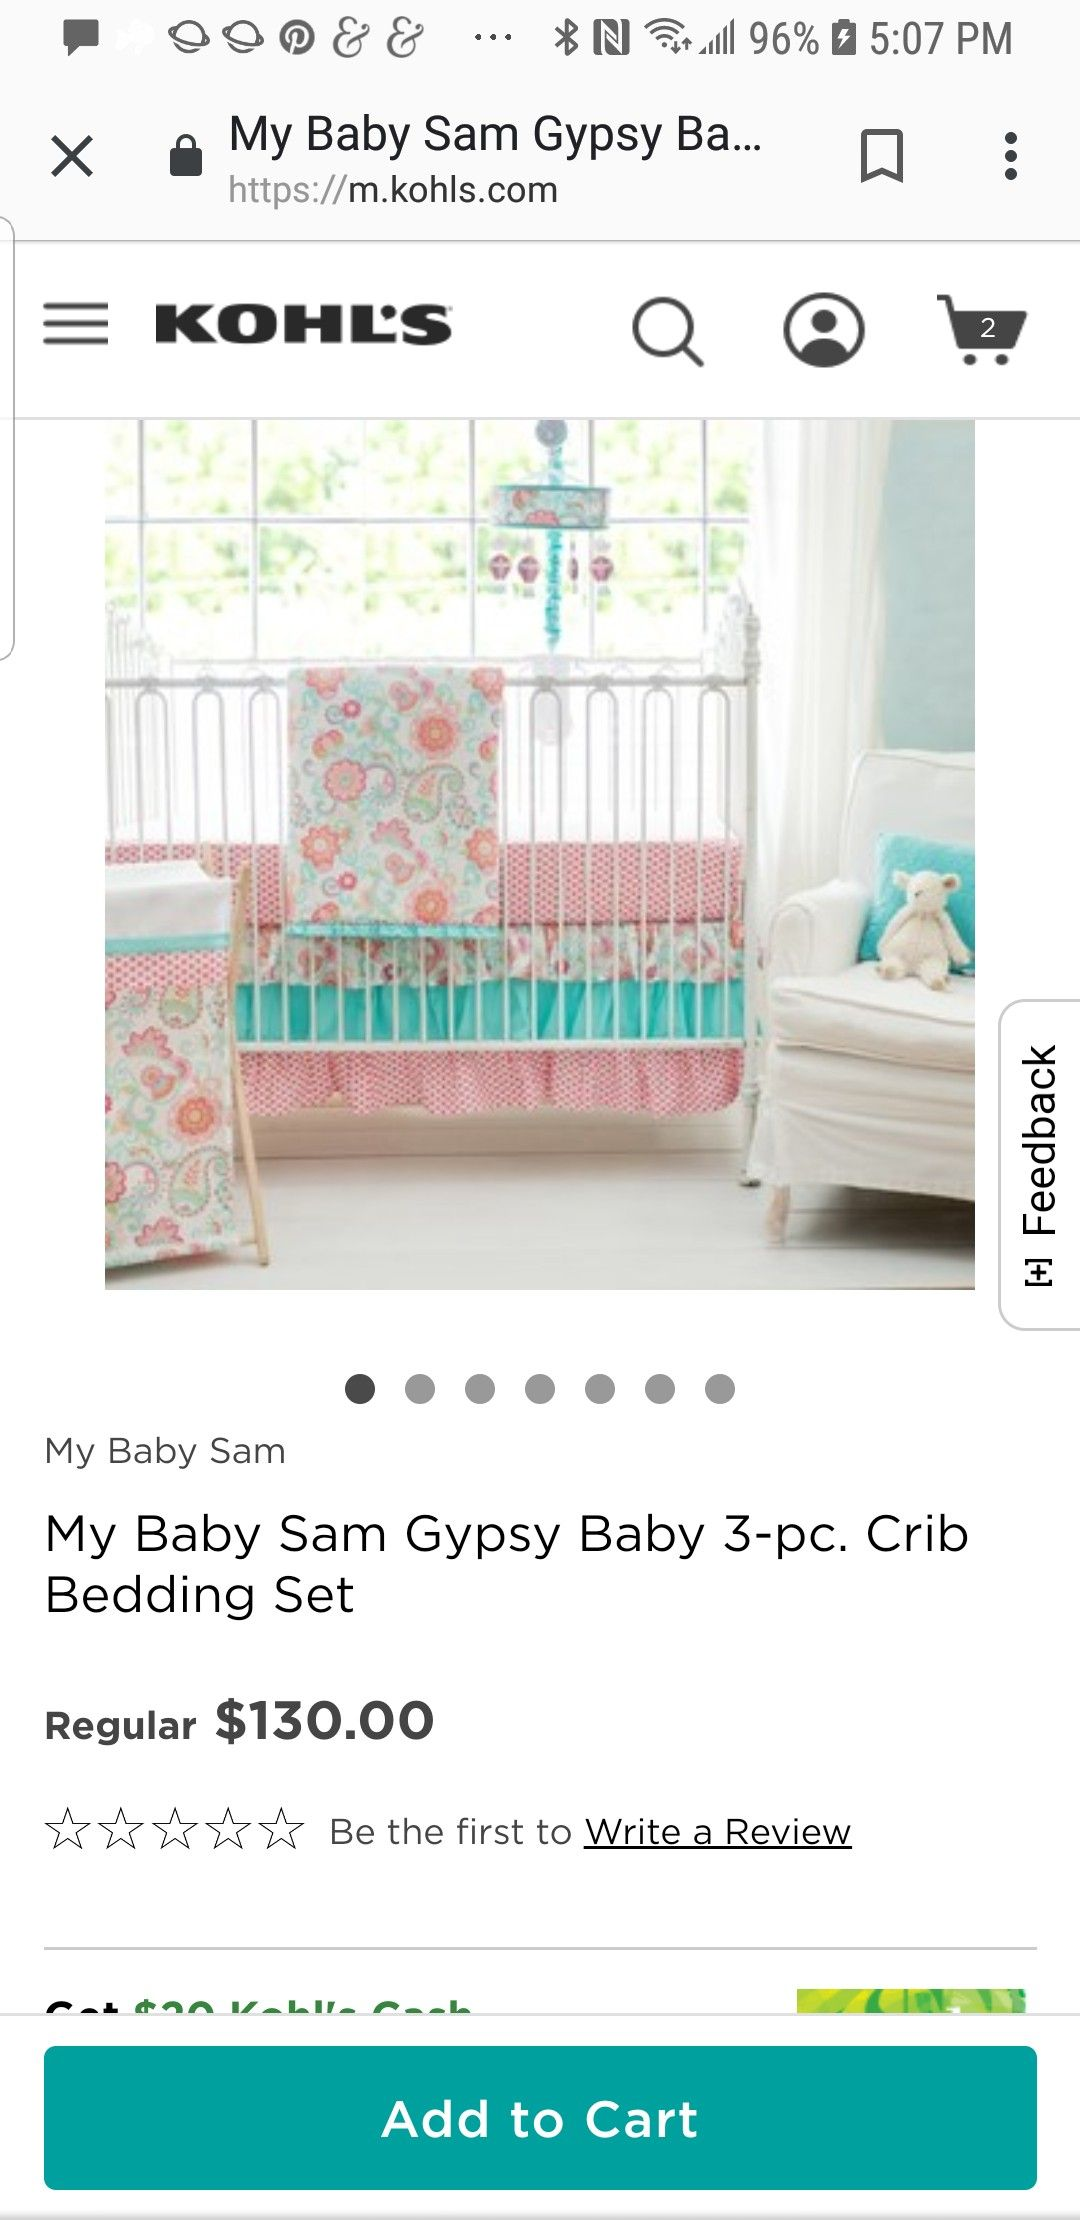 Pin By Terri Raulerson On Babygirl Baby Bedding Sets Baby Bed Bedding Set [ 2220 x 1080 Pixel ]